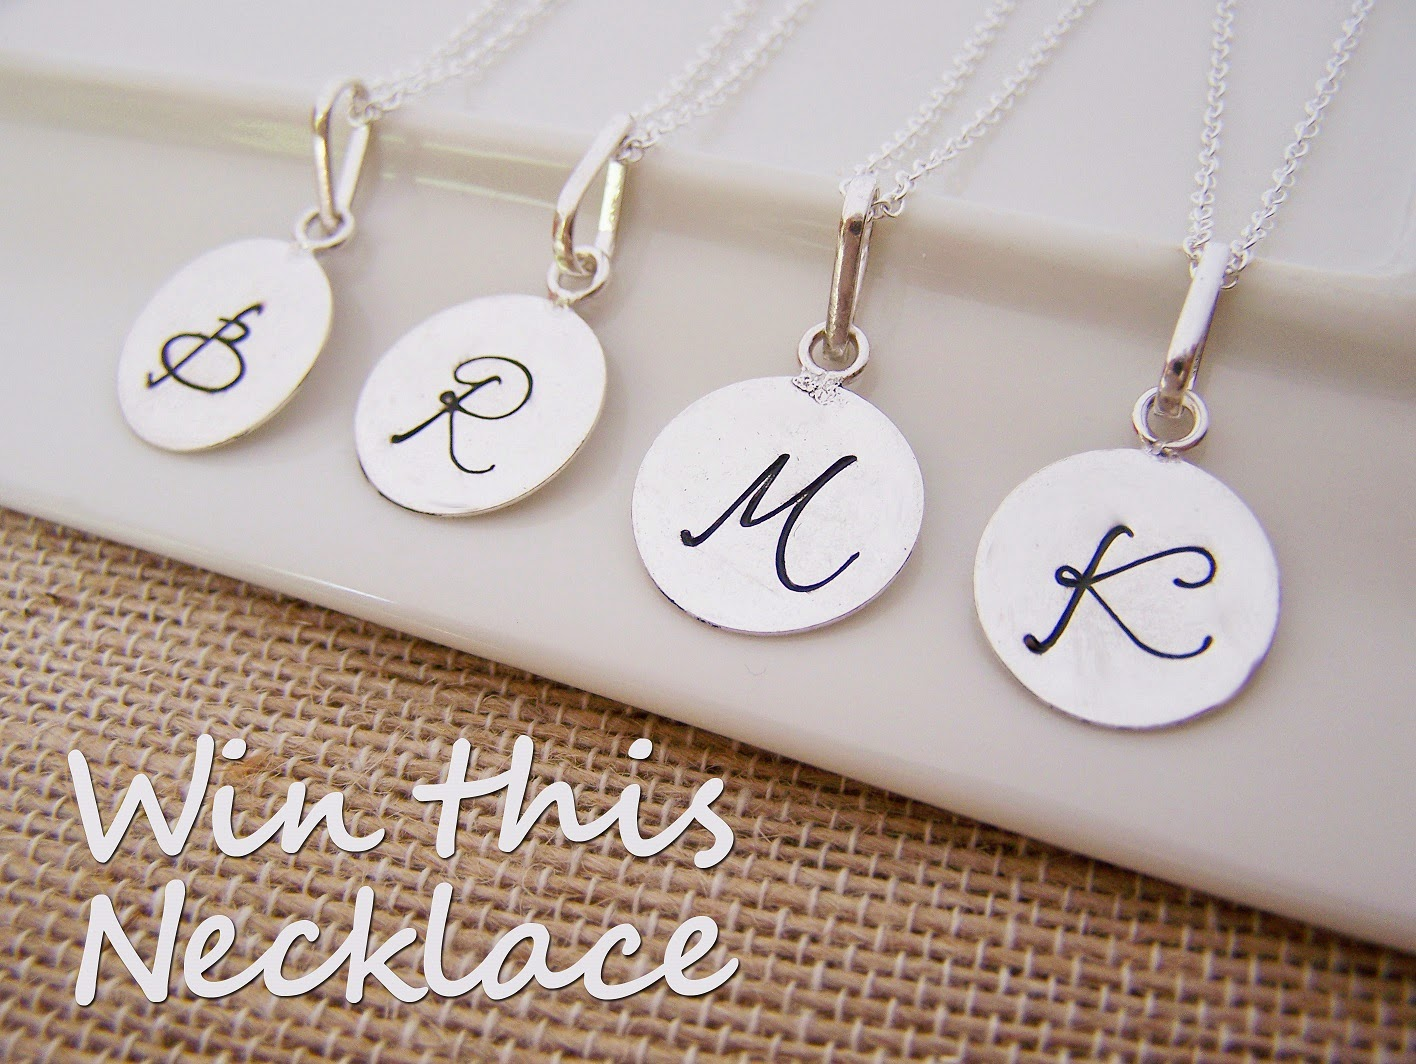 Cy design studio custom necklace giveaway for Just my style personalized jewelry studio